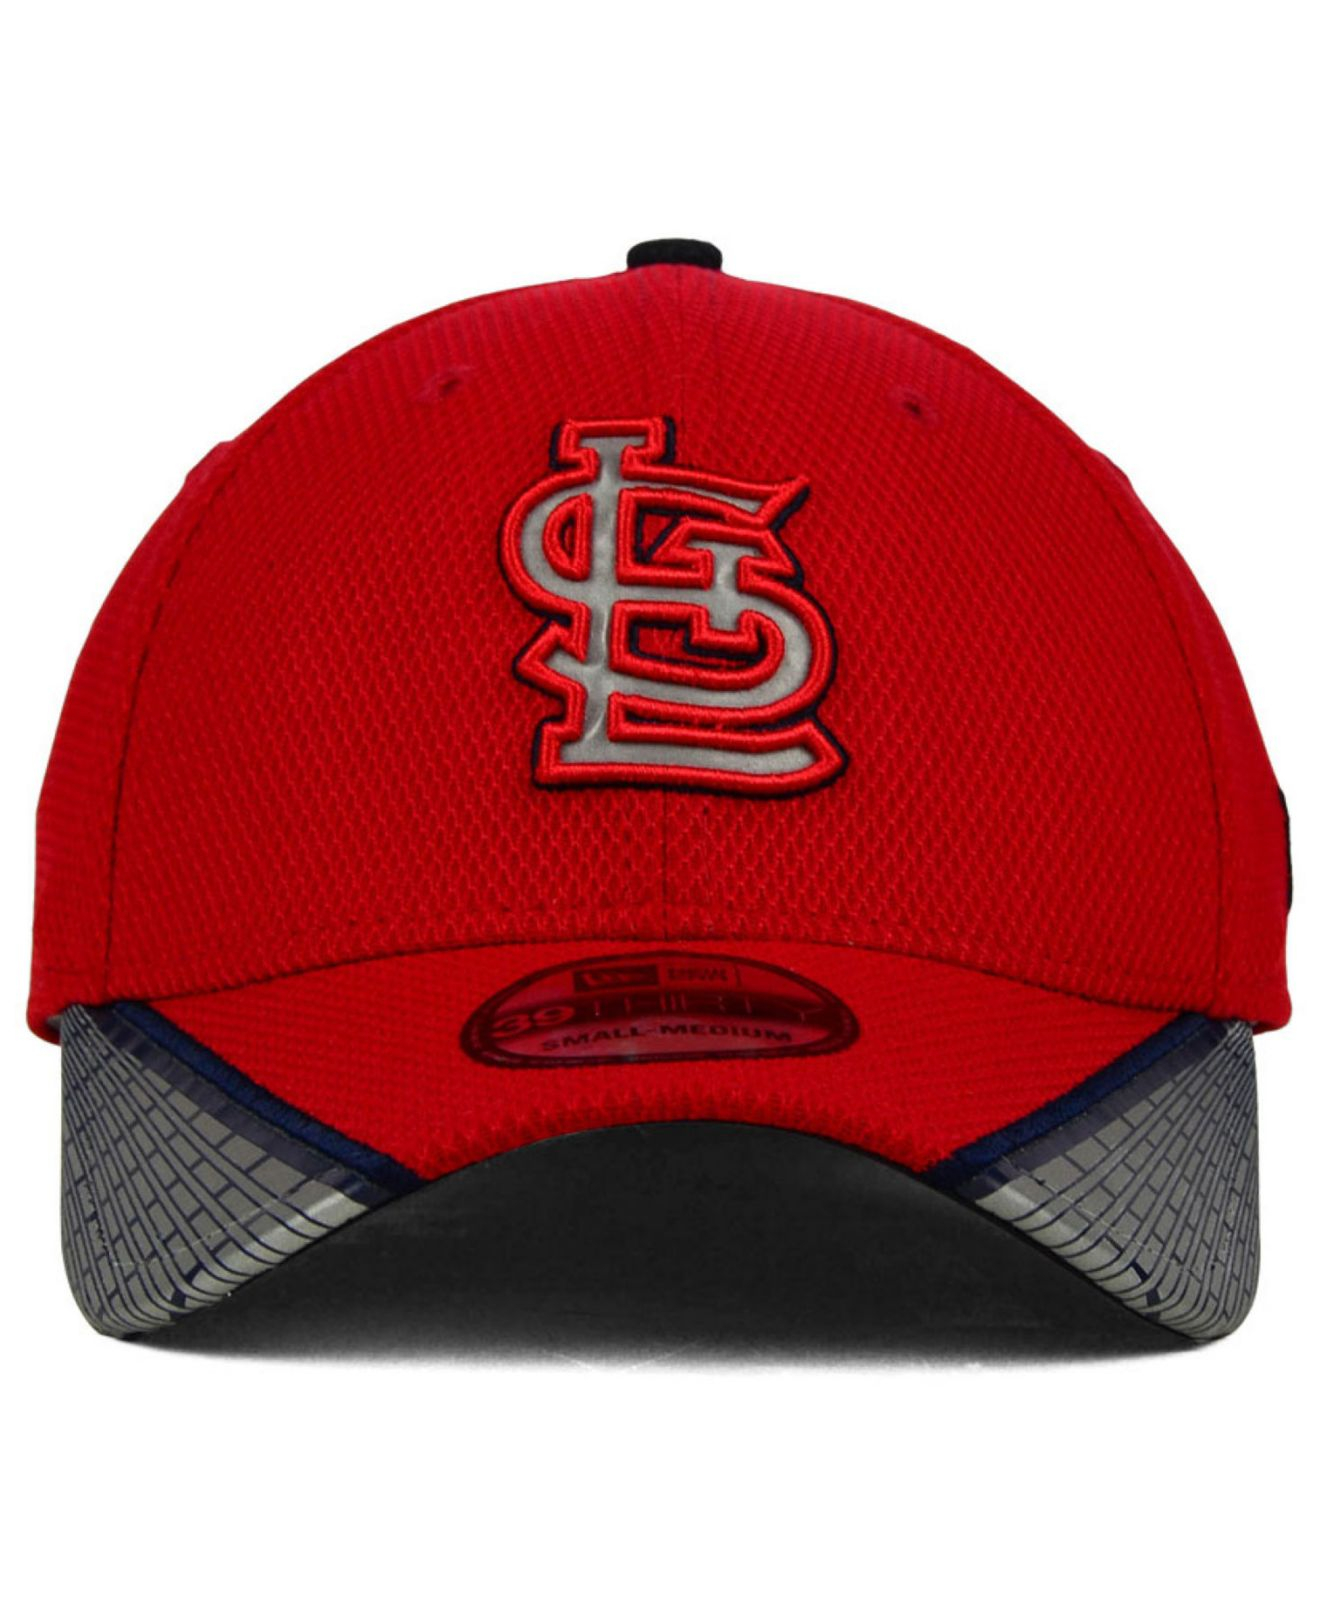 e5dda2c2c16 switzerland lyst ktz st. louis cardinals reflective slugger diamond era  39thirty cap in blue for